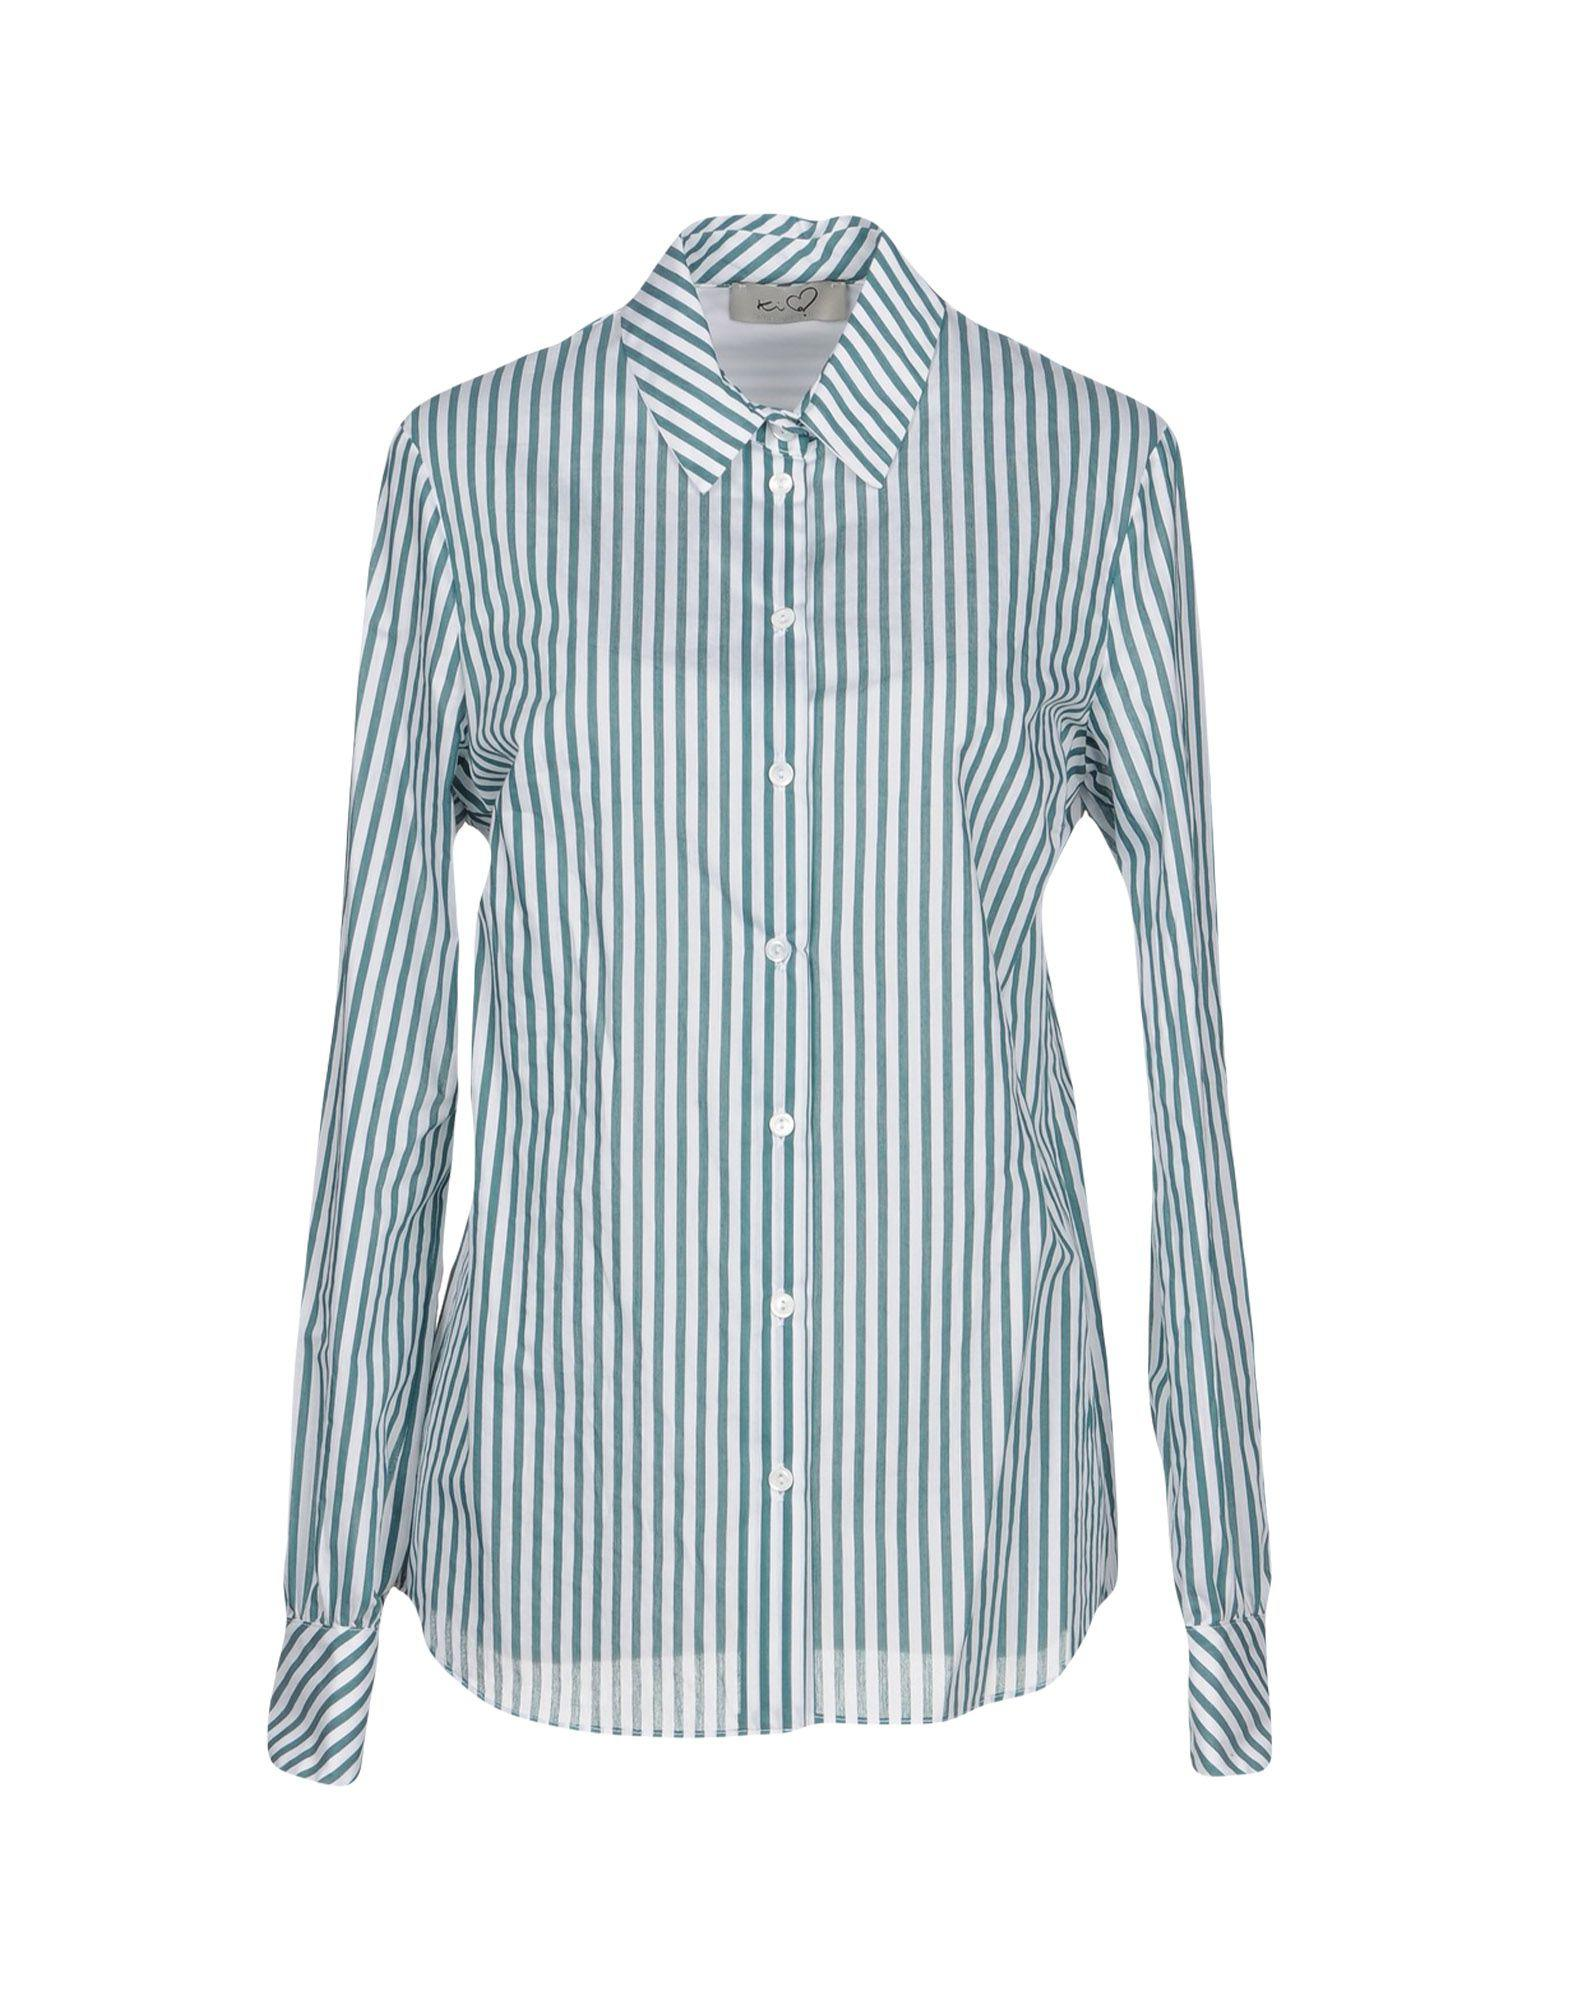 Blue and white striped blouse Ki6? Who are you? Cheap Prices Authentic Buy Cheap Big Sale Clearance Store Cheap Online Cheap Great Deals Outlet Free Shipping Authentic qY4I4GL3